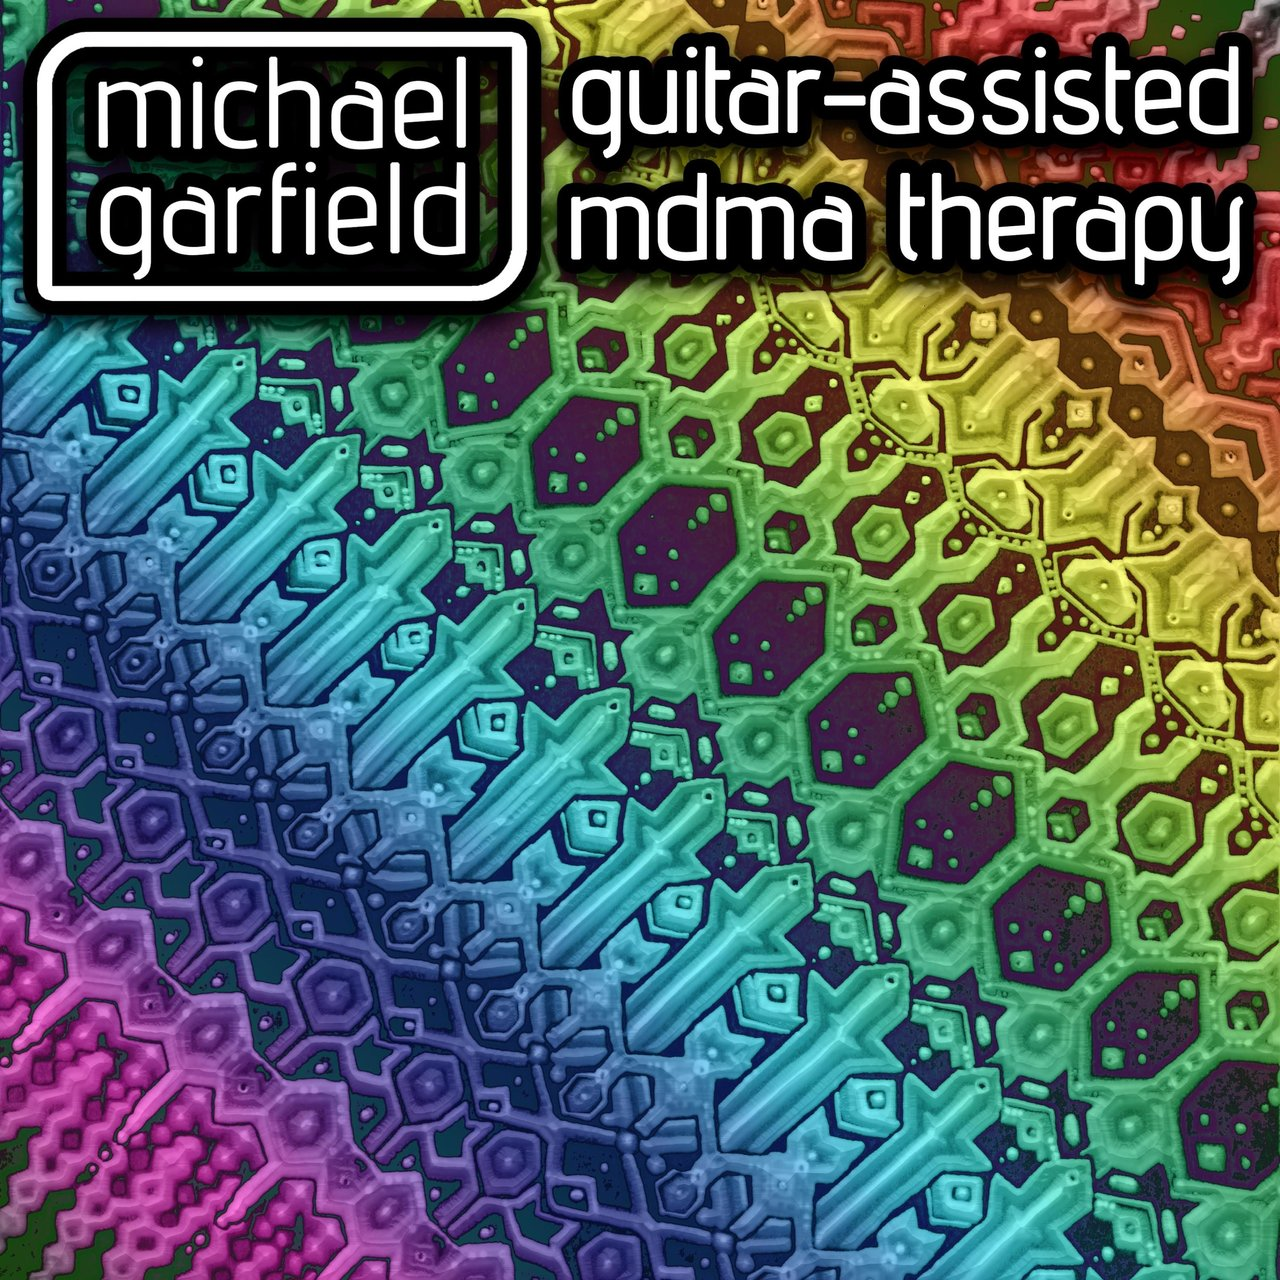 Guitar-Assisted Mdma Therapy